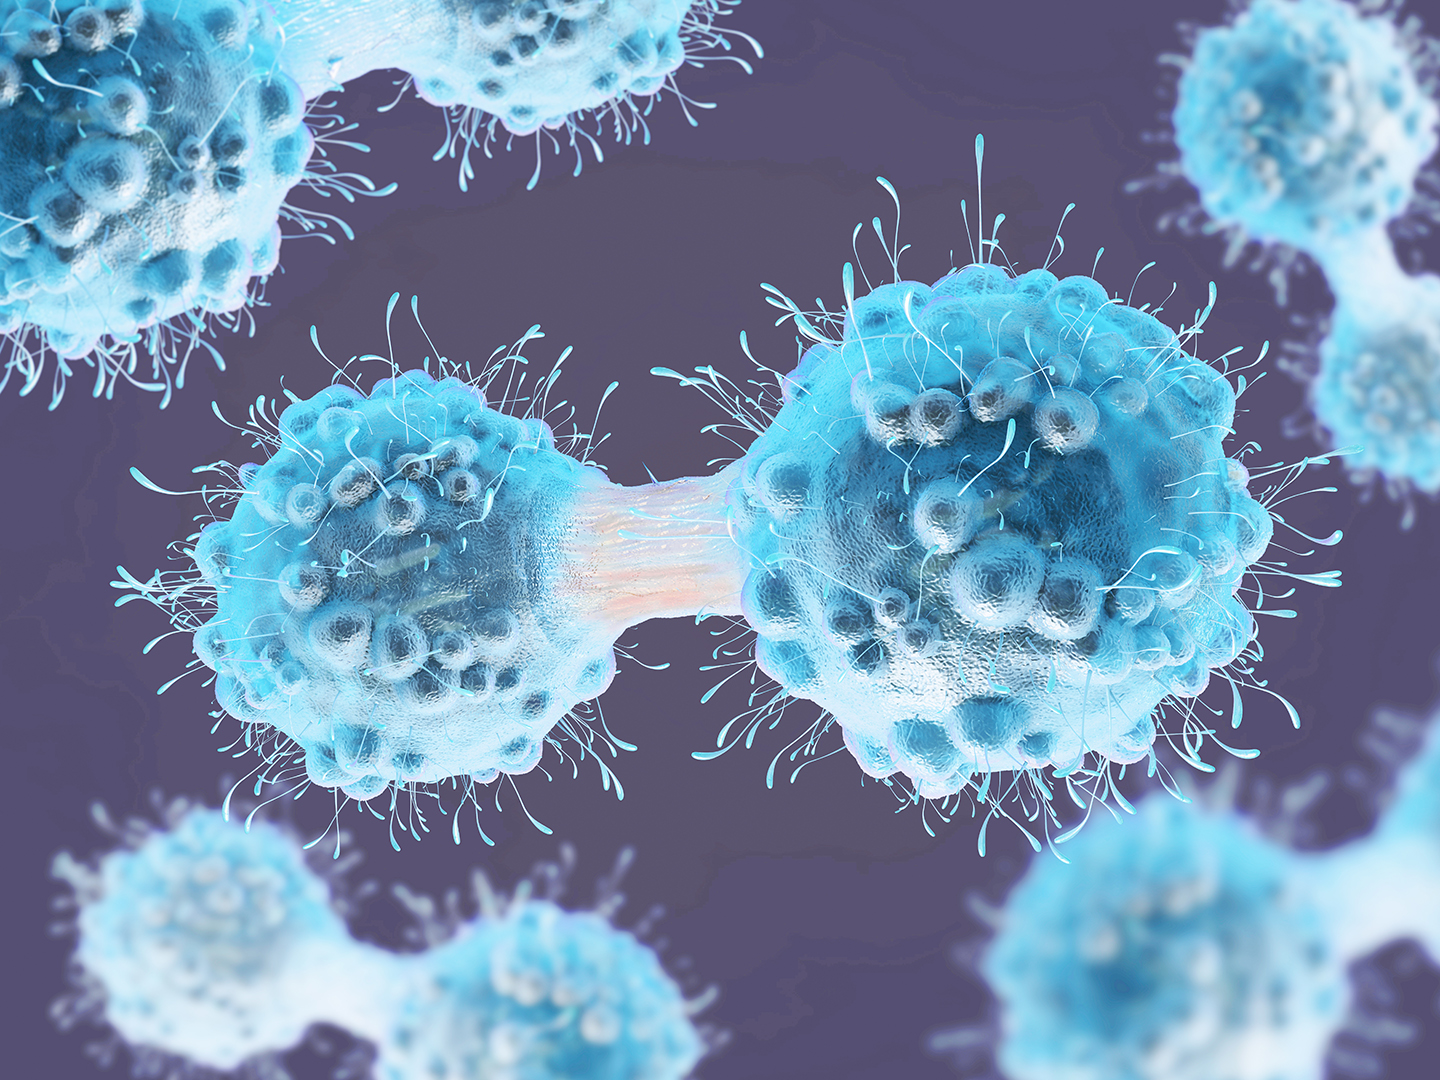 3d illustration of a cancer cell in the process of mitosis